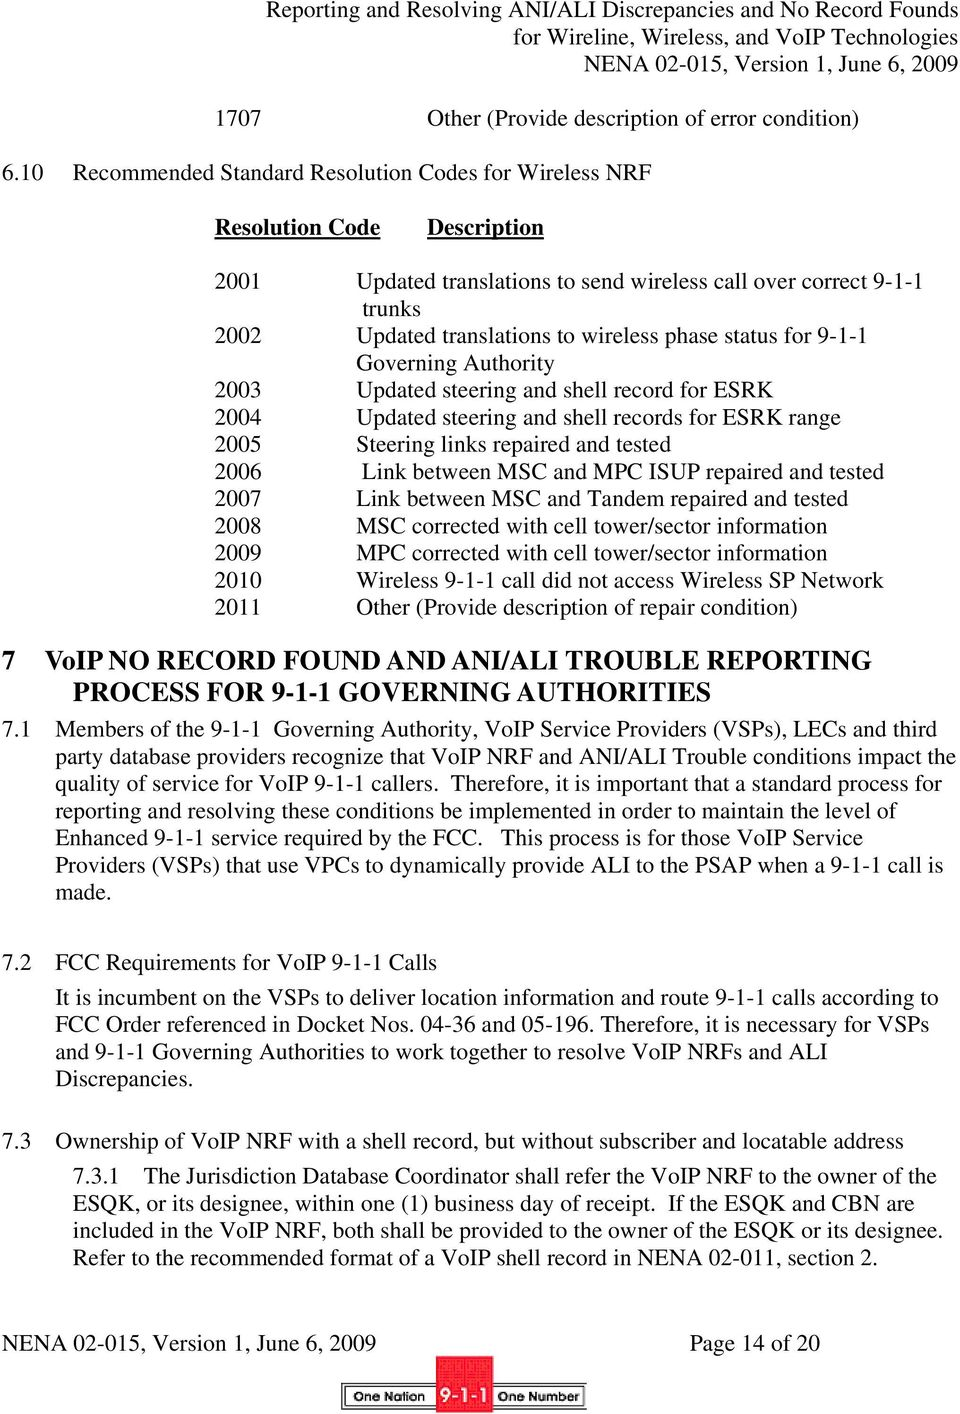 phase status for 9-1-1 Governing Authority 2003 Updated steering and shell record for ESRK 2004 Updated steering and shell records for ESRK range 2005 Steering links repaired and tested 2006 Link